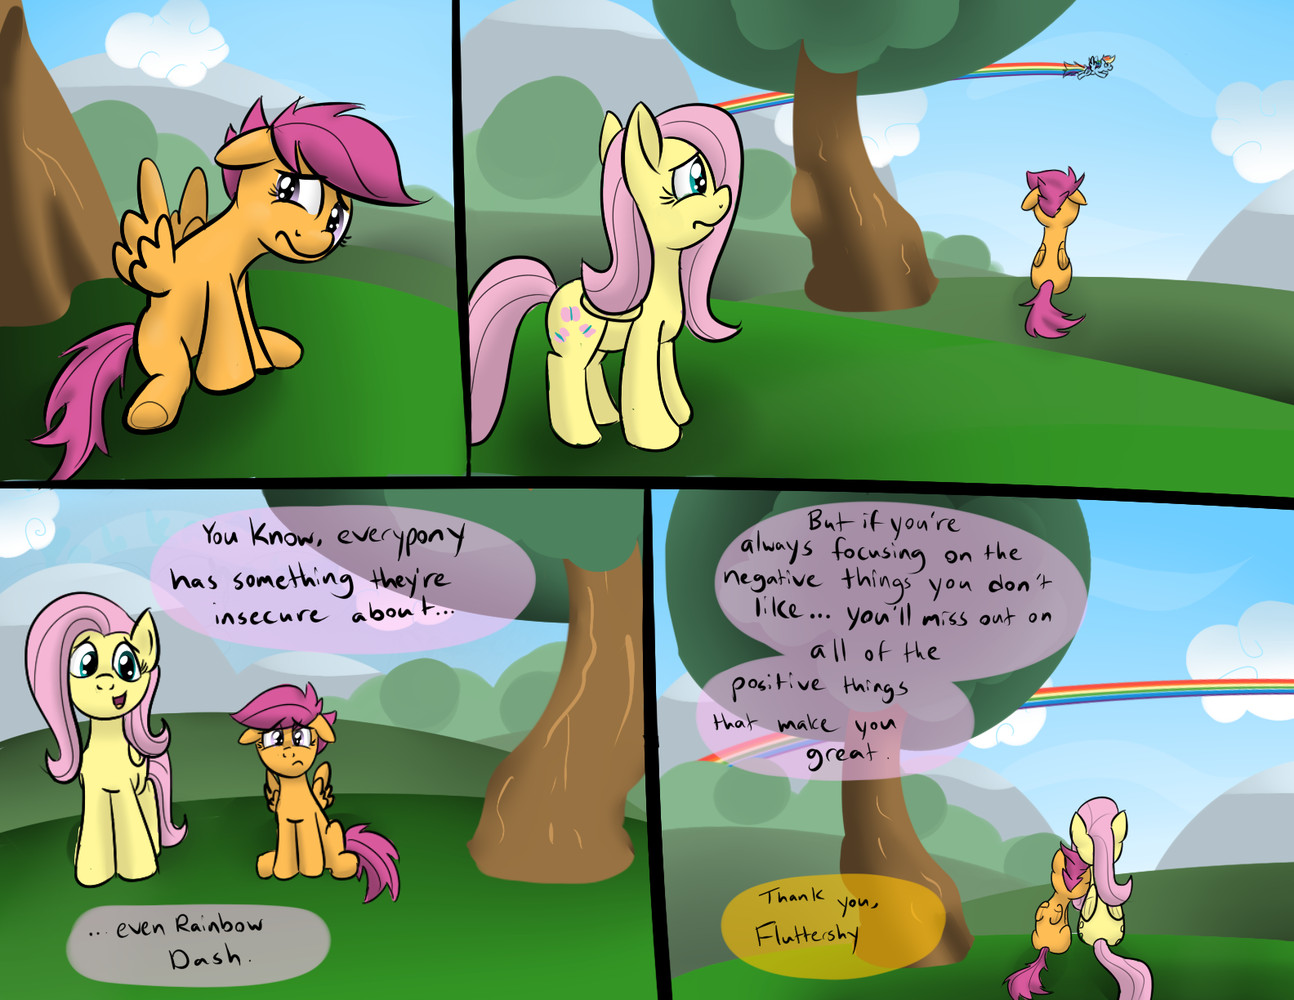 Fluttershy Rainbow Dash And Scootaloo Drawn By Sirpayne Bronibooru Rainbow dash spots scootaloo in the club house and finds her crying. bronibooru